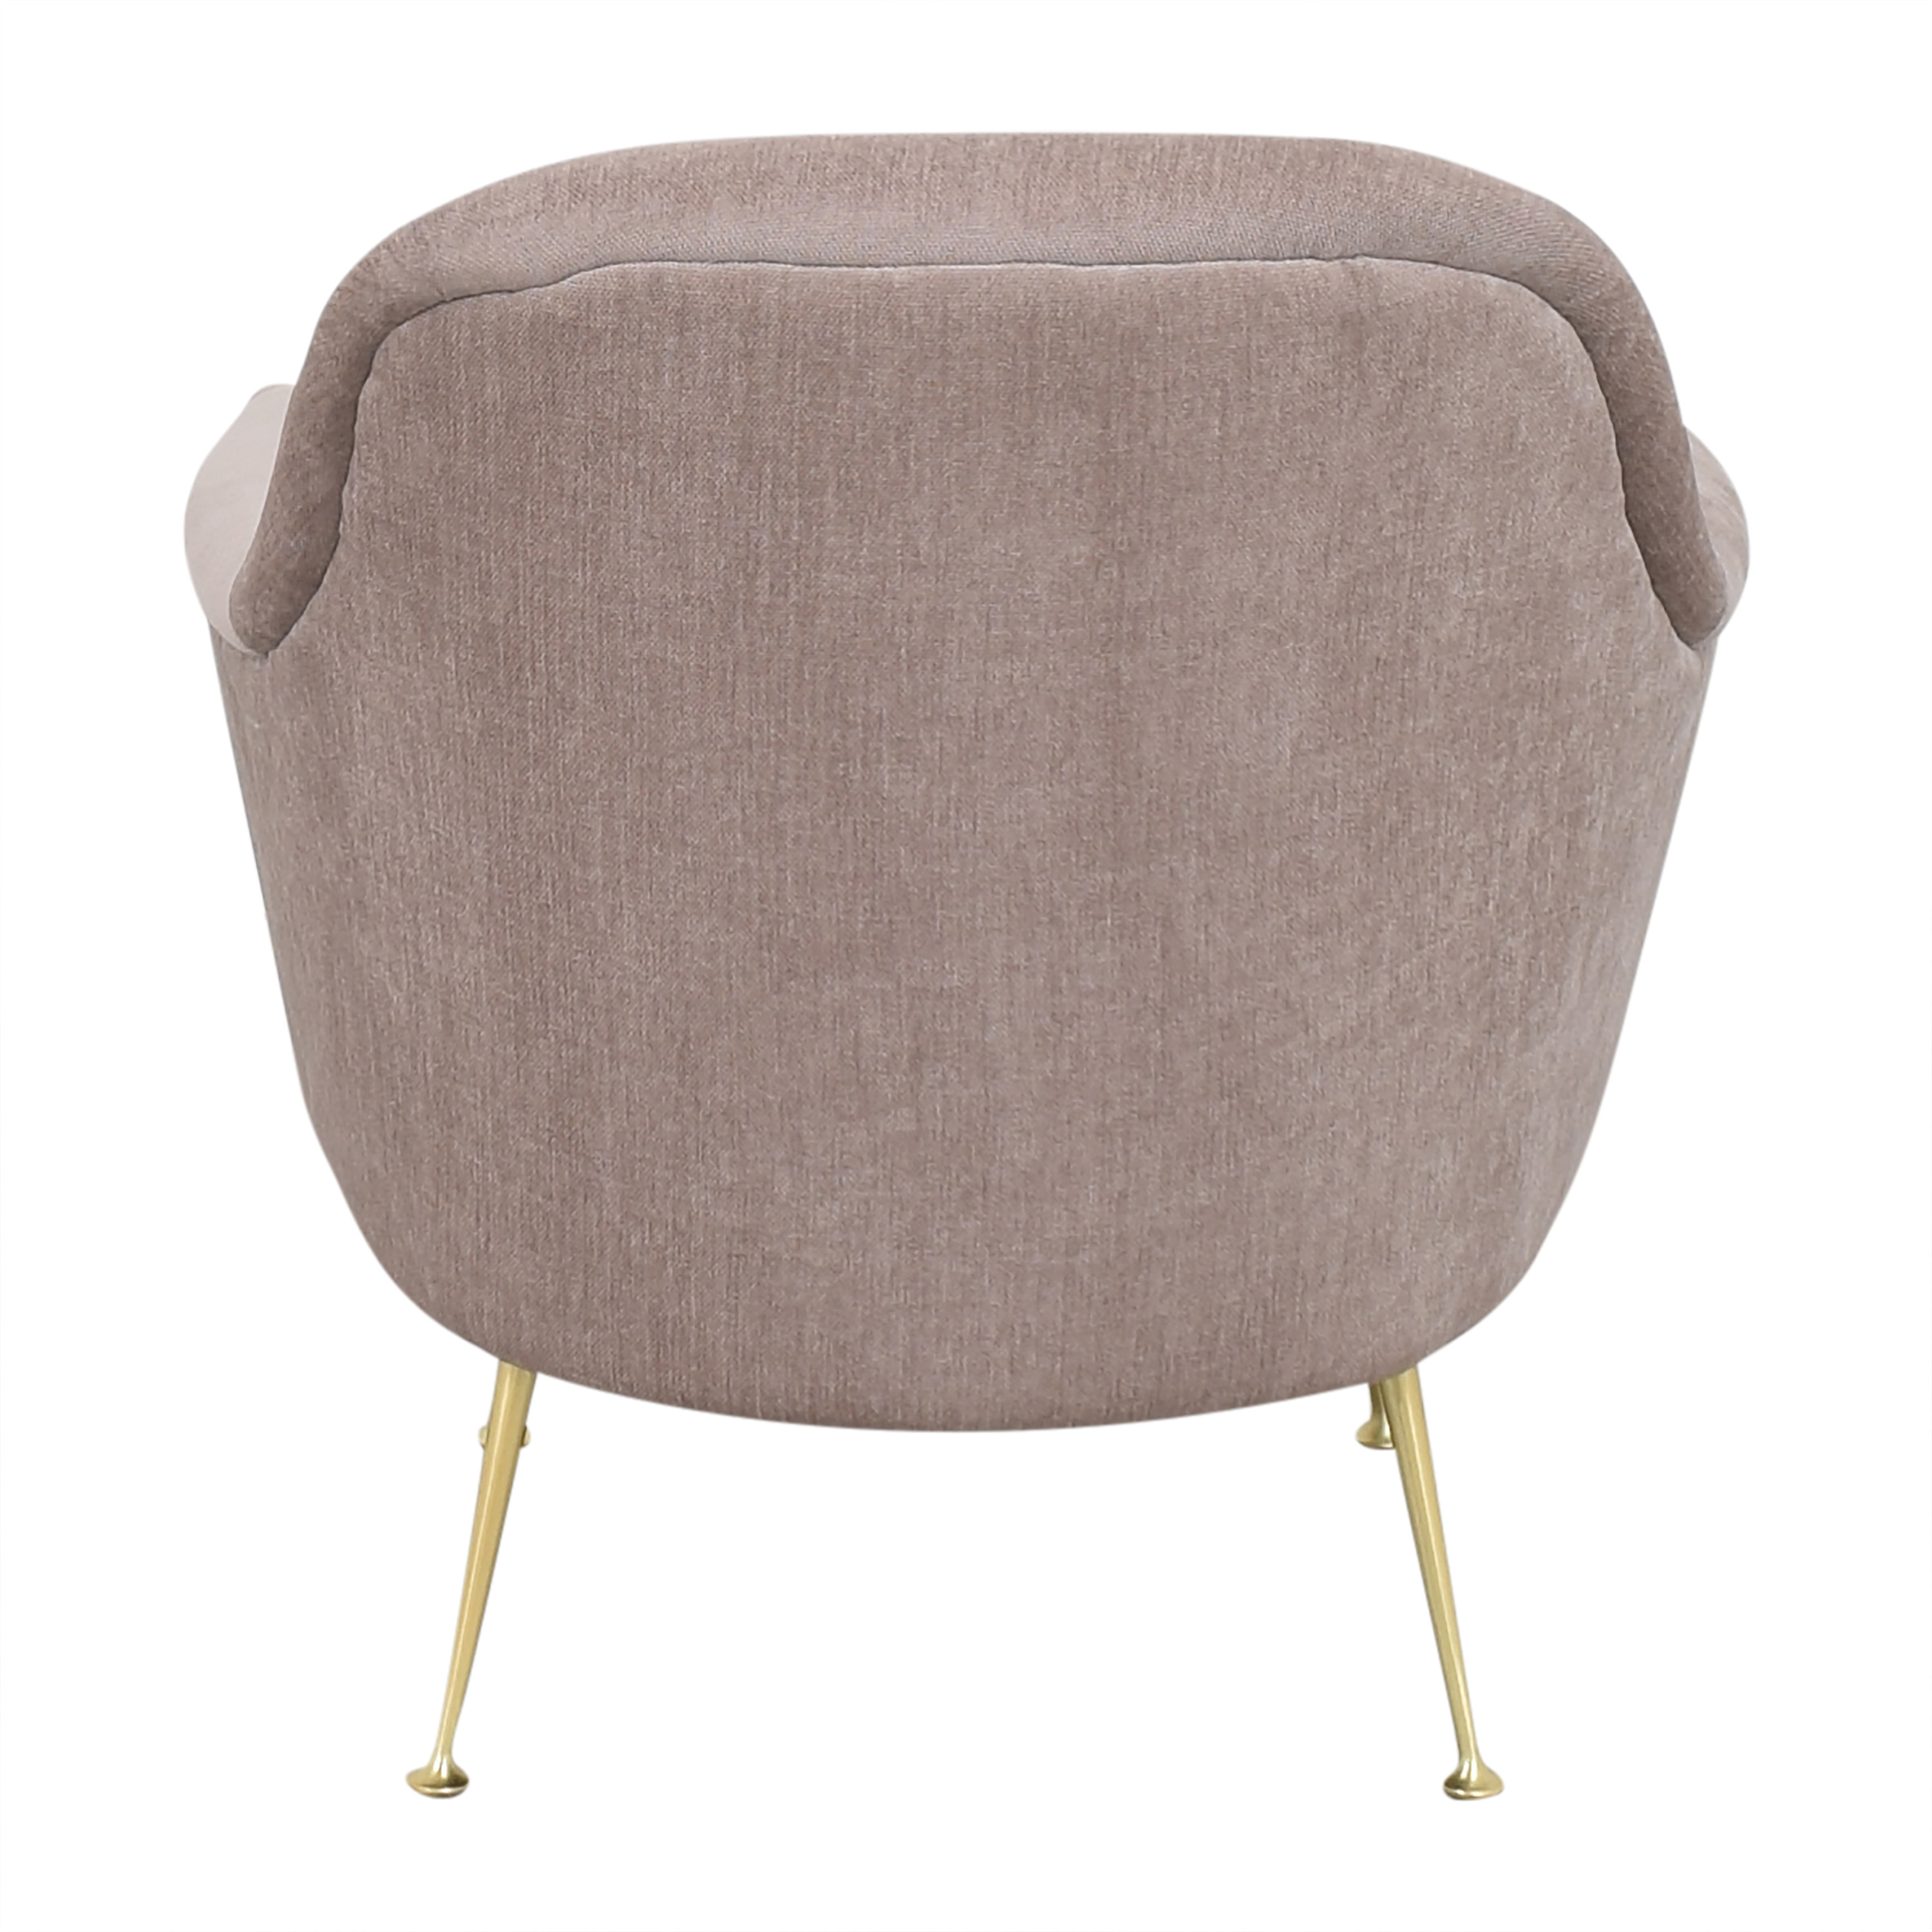 West Elm West Elm Phoebe Accent Chair Accent Chairs